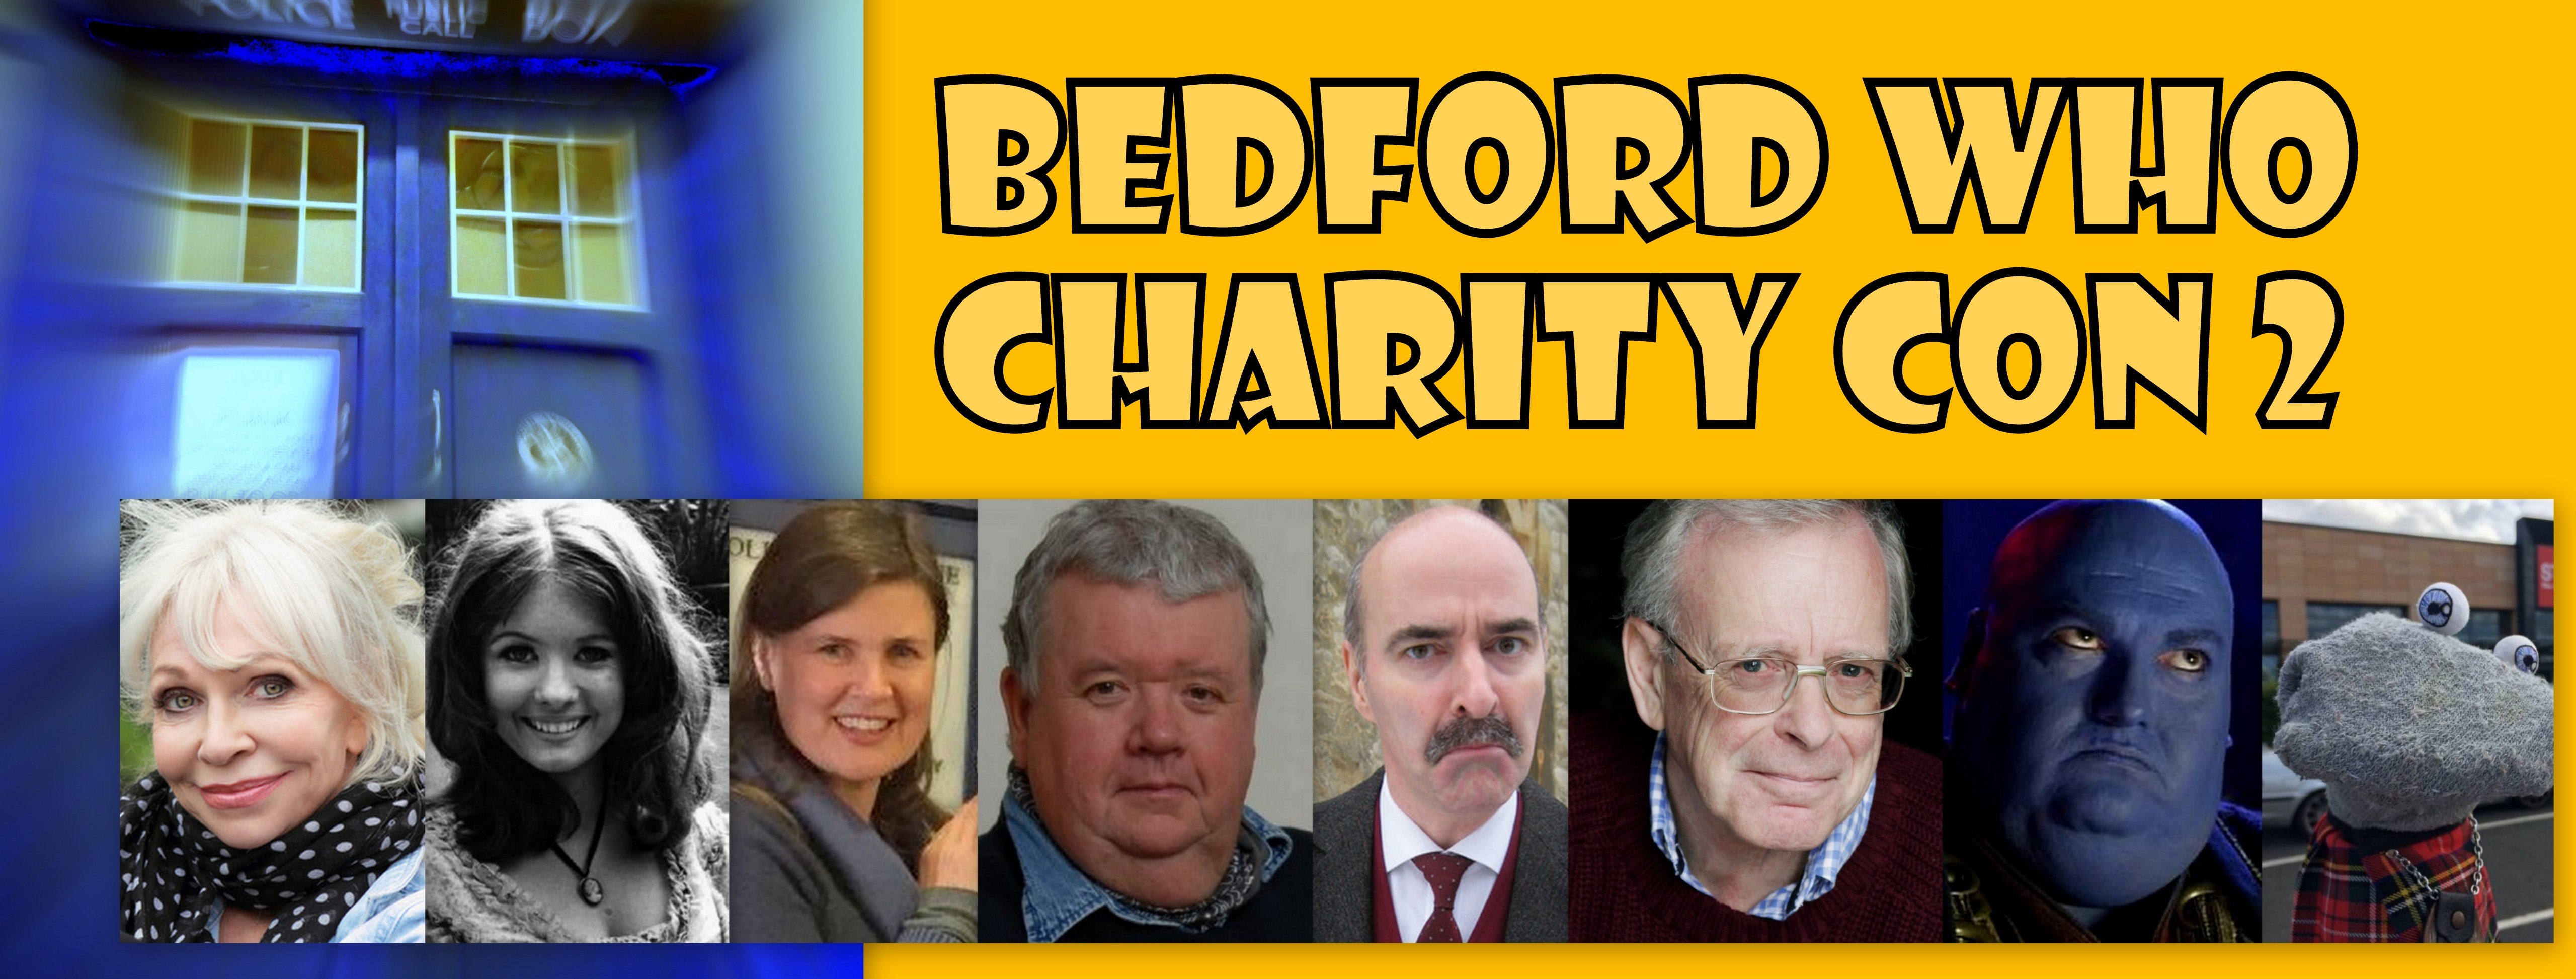 Bedford Who Charity Con 2